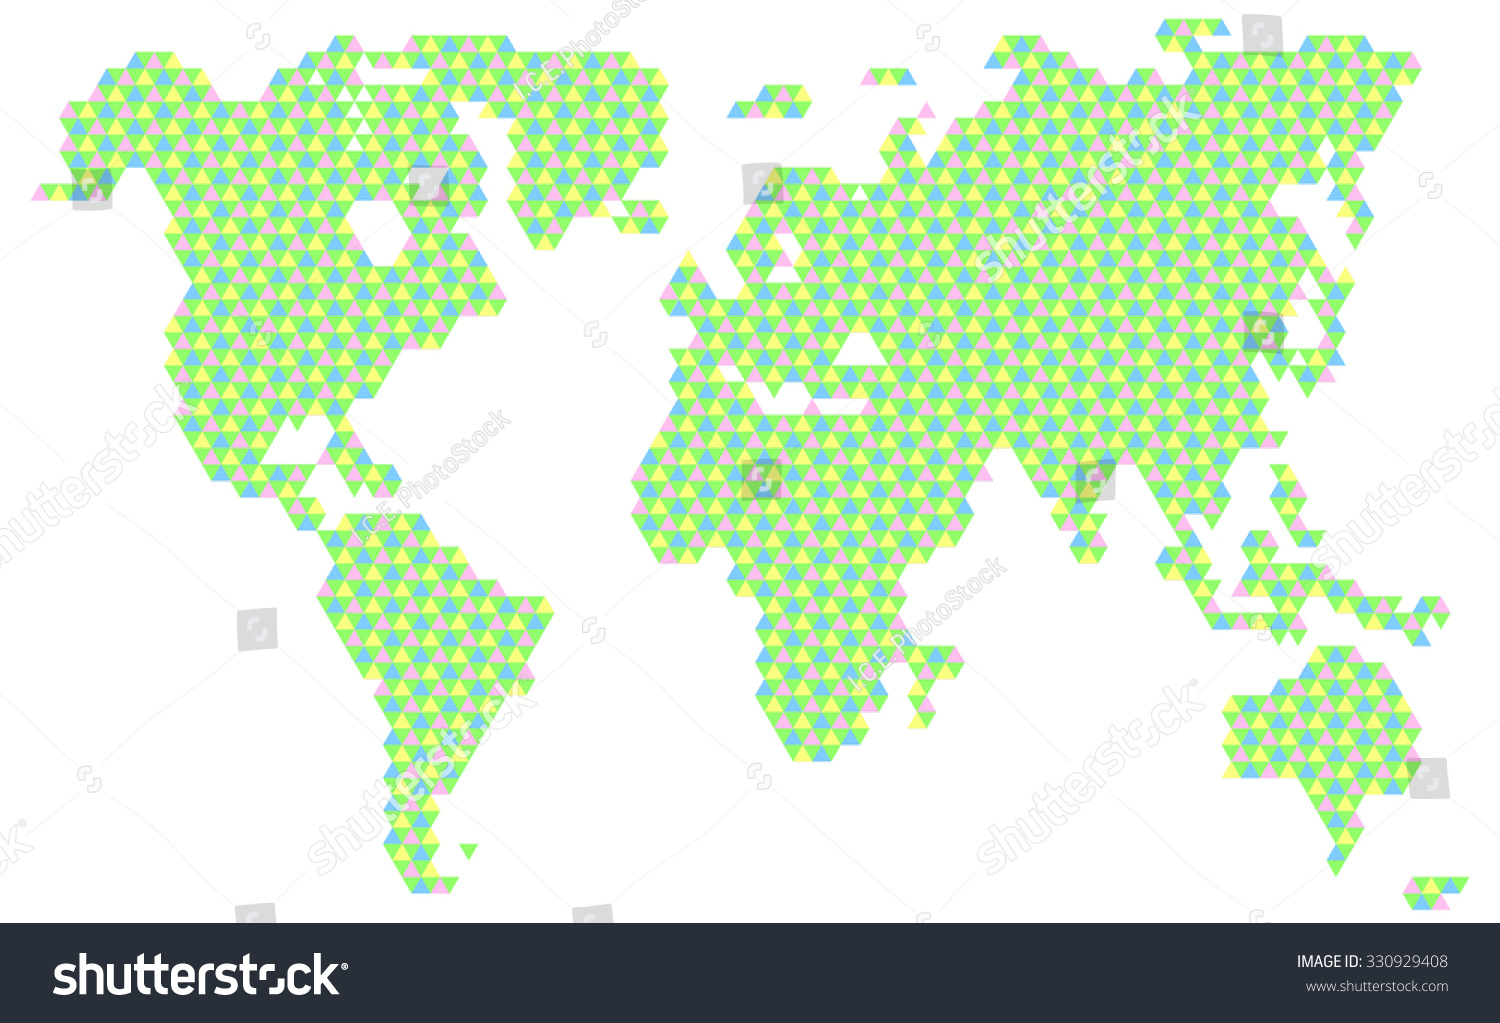 Vector illustration color world map made stock vector 330929408 vector illustration of color world map made of triangles gumiabroncs Gallery